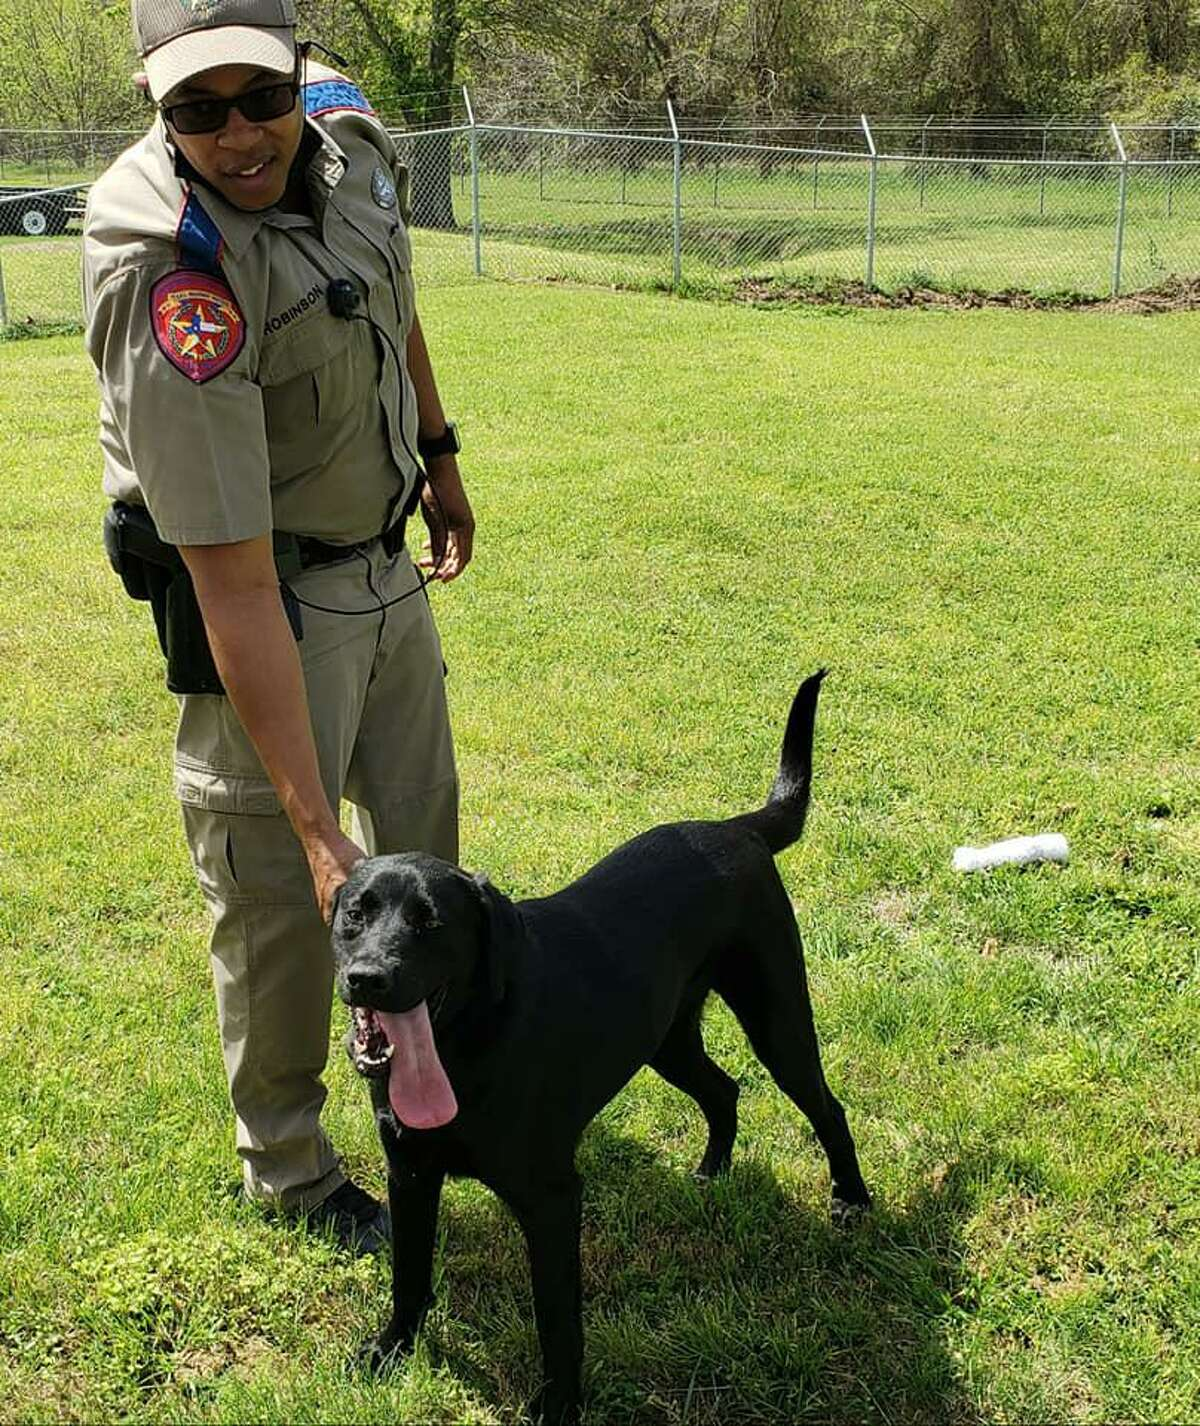 State trooper Corey Robinson plays with Dog, a former stray that might become a K-9 cop on March 23, 2021.